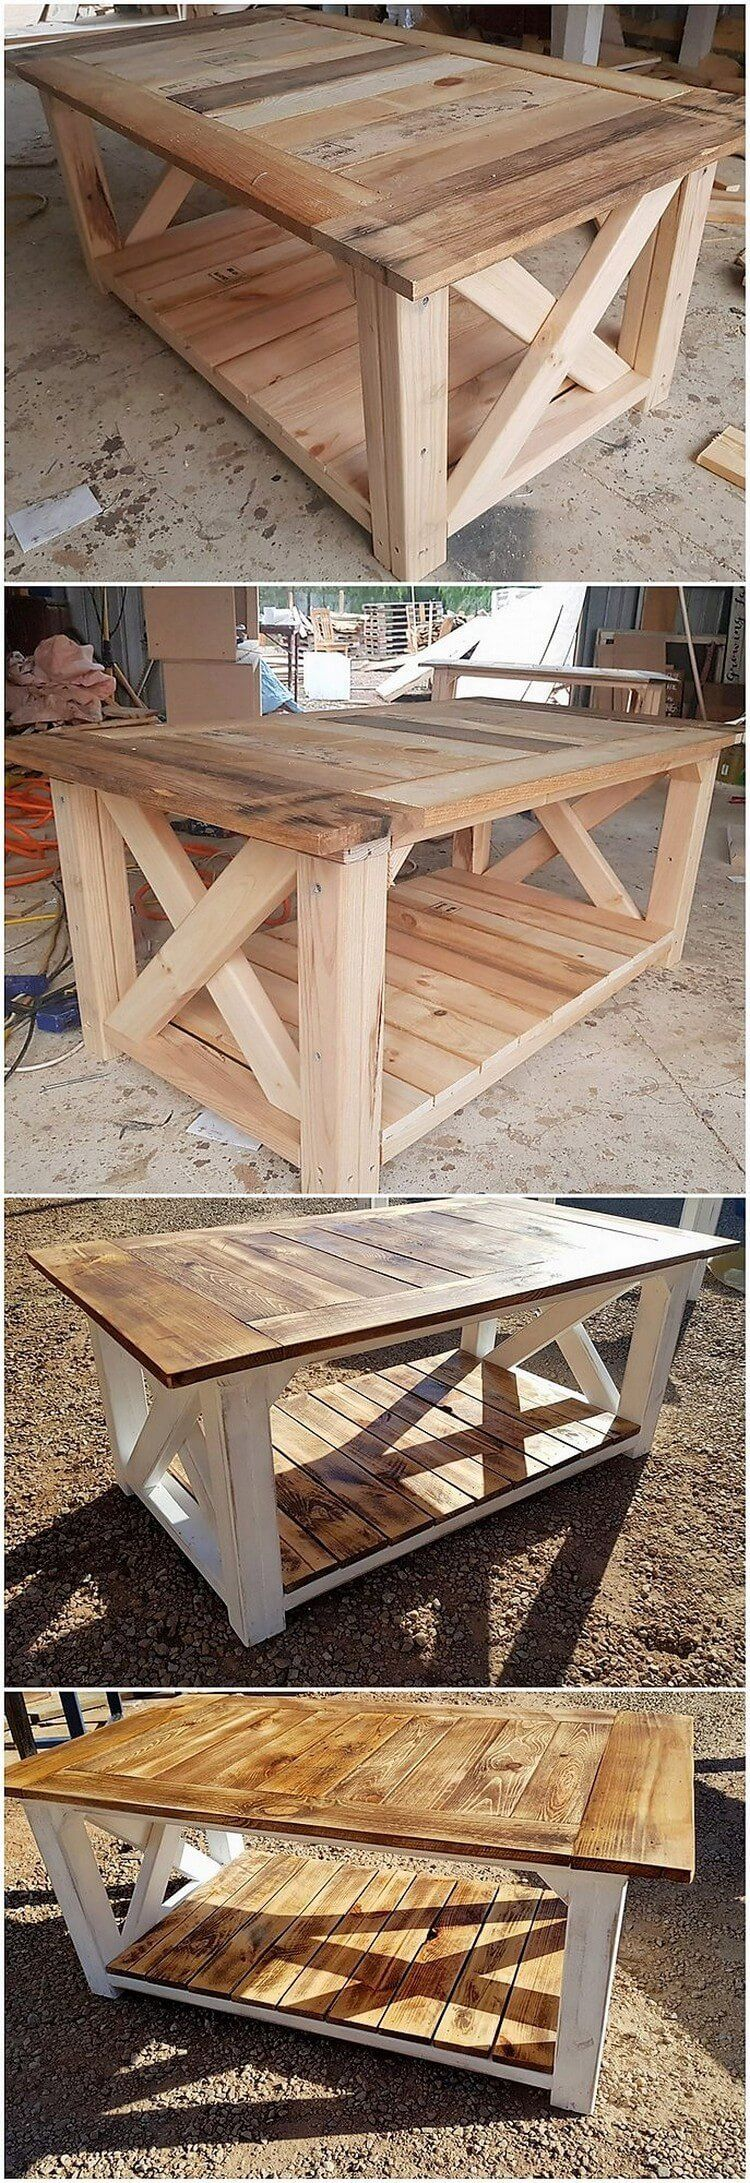 Epic Wood Pallet Ideas and Projects You Can Try Today! #woodpalletfurniture